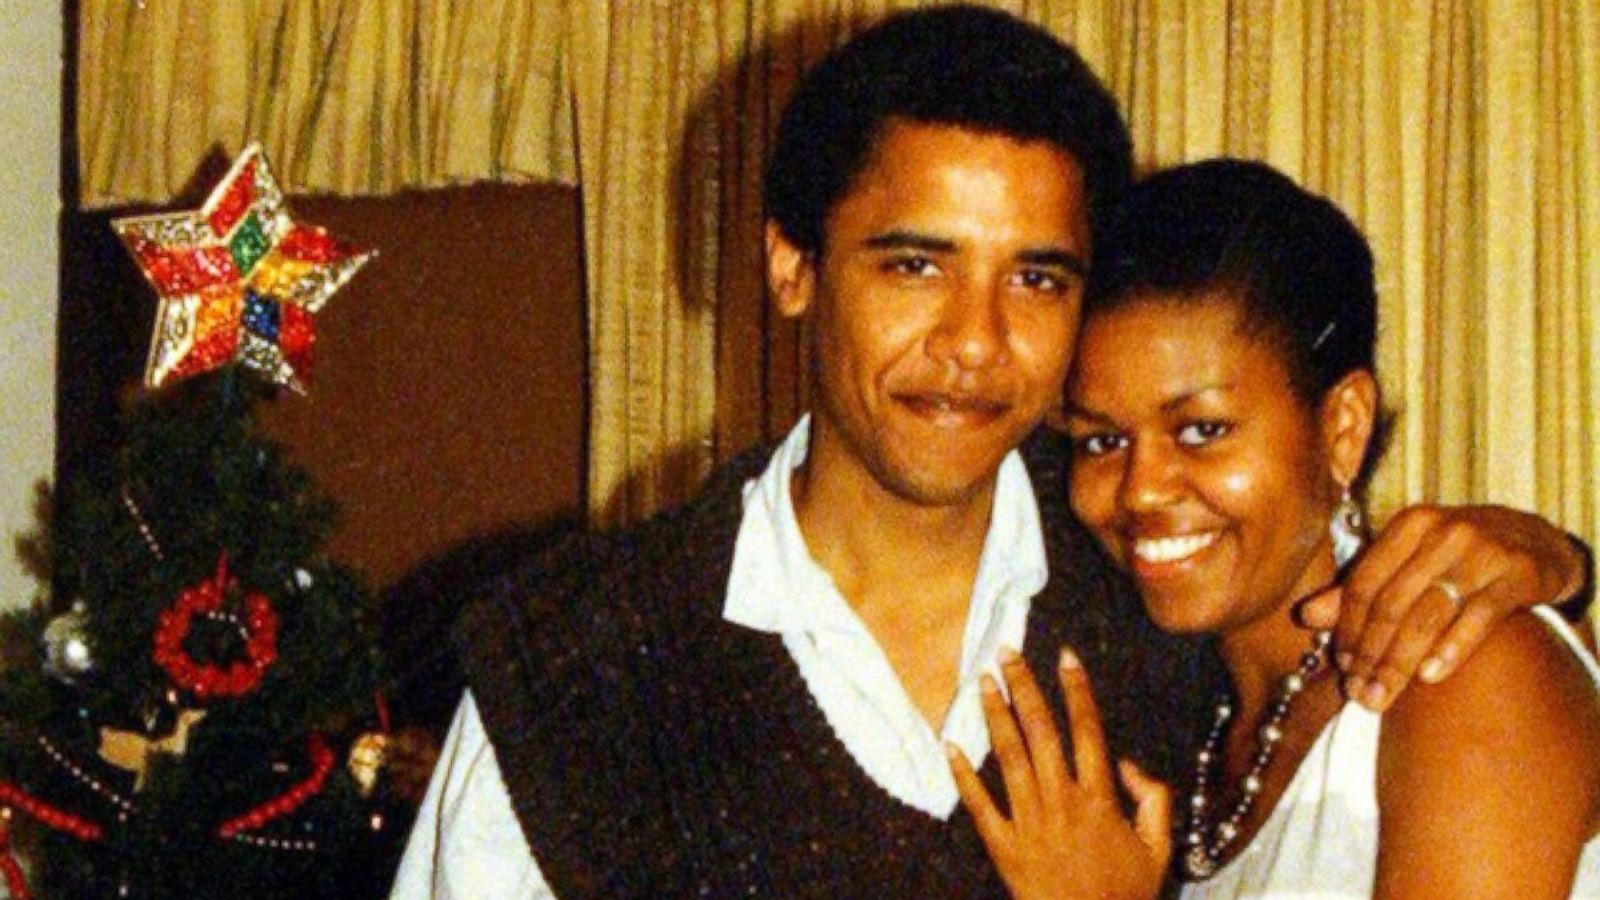 Look at the Obamas\' Throwback Christmas Snap - ABC News